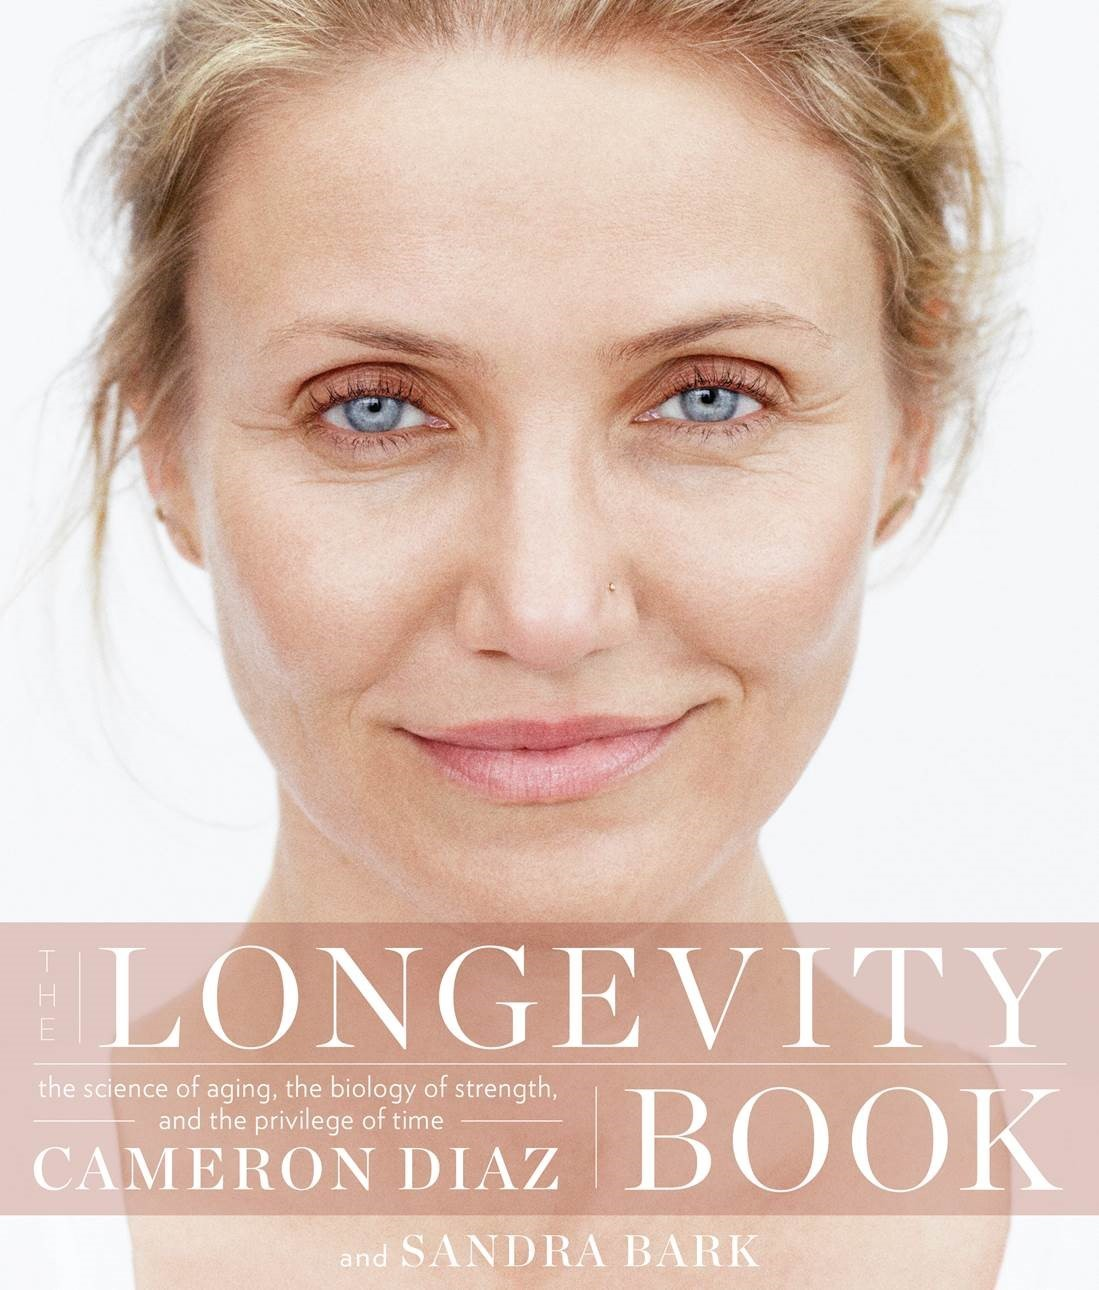 The Longevity Book The Science of Aging- the Biology of Strength- and the Pge of Time